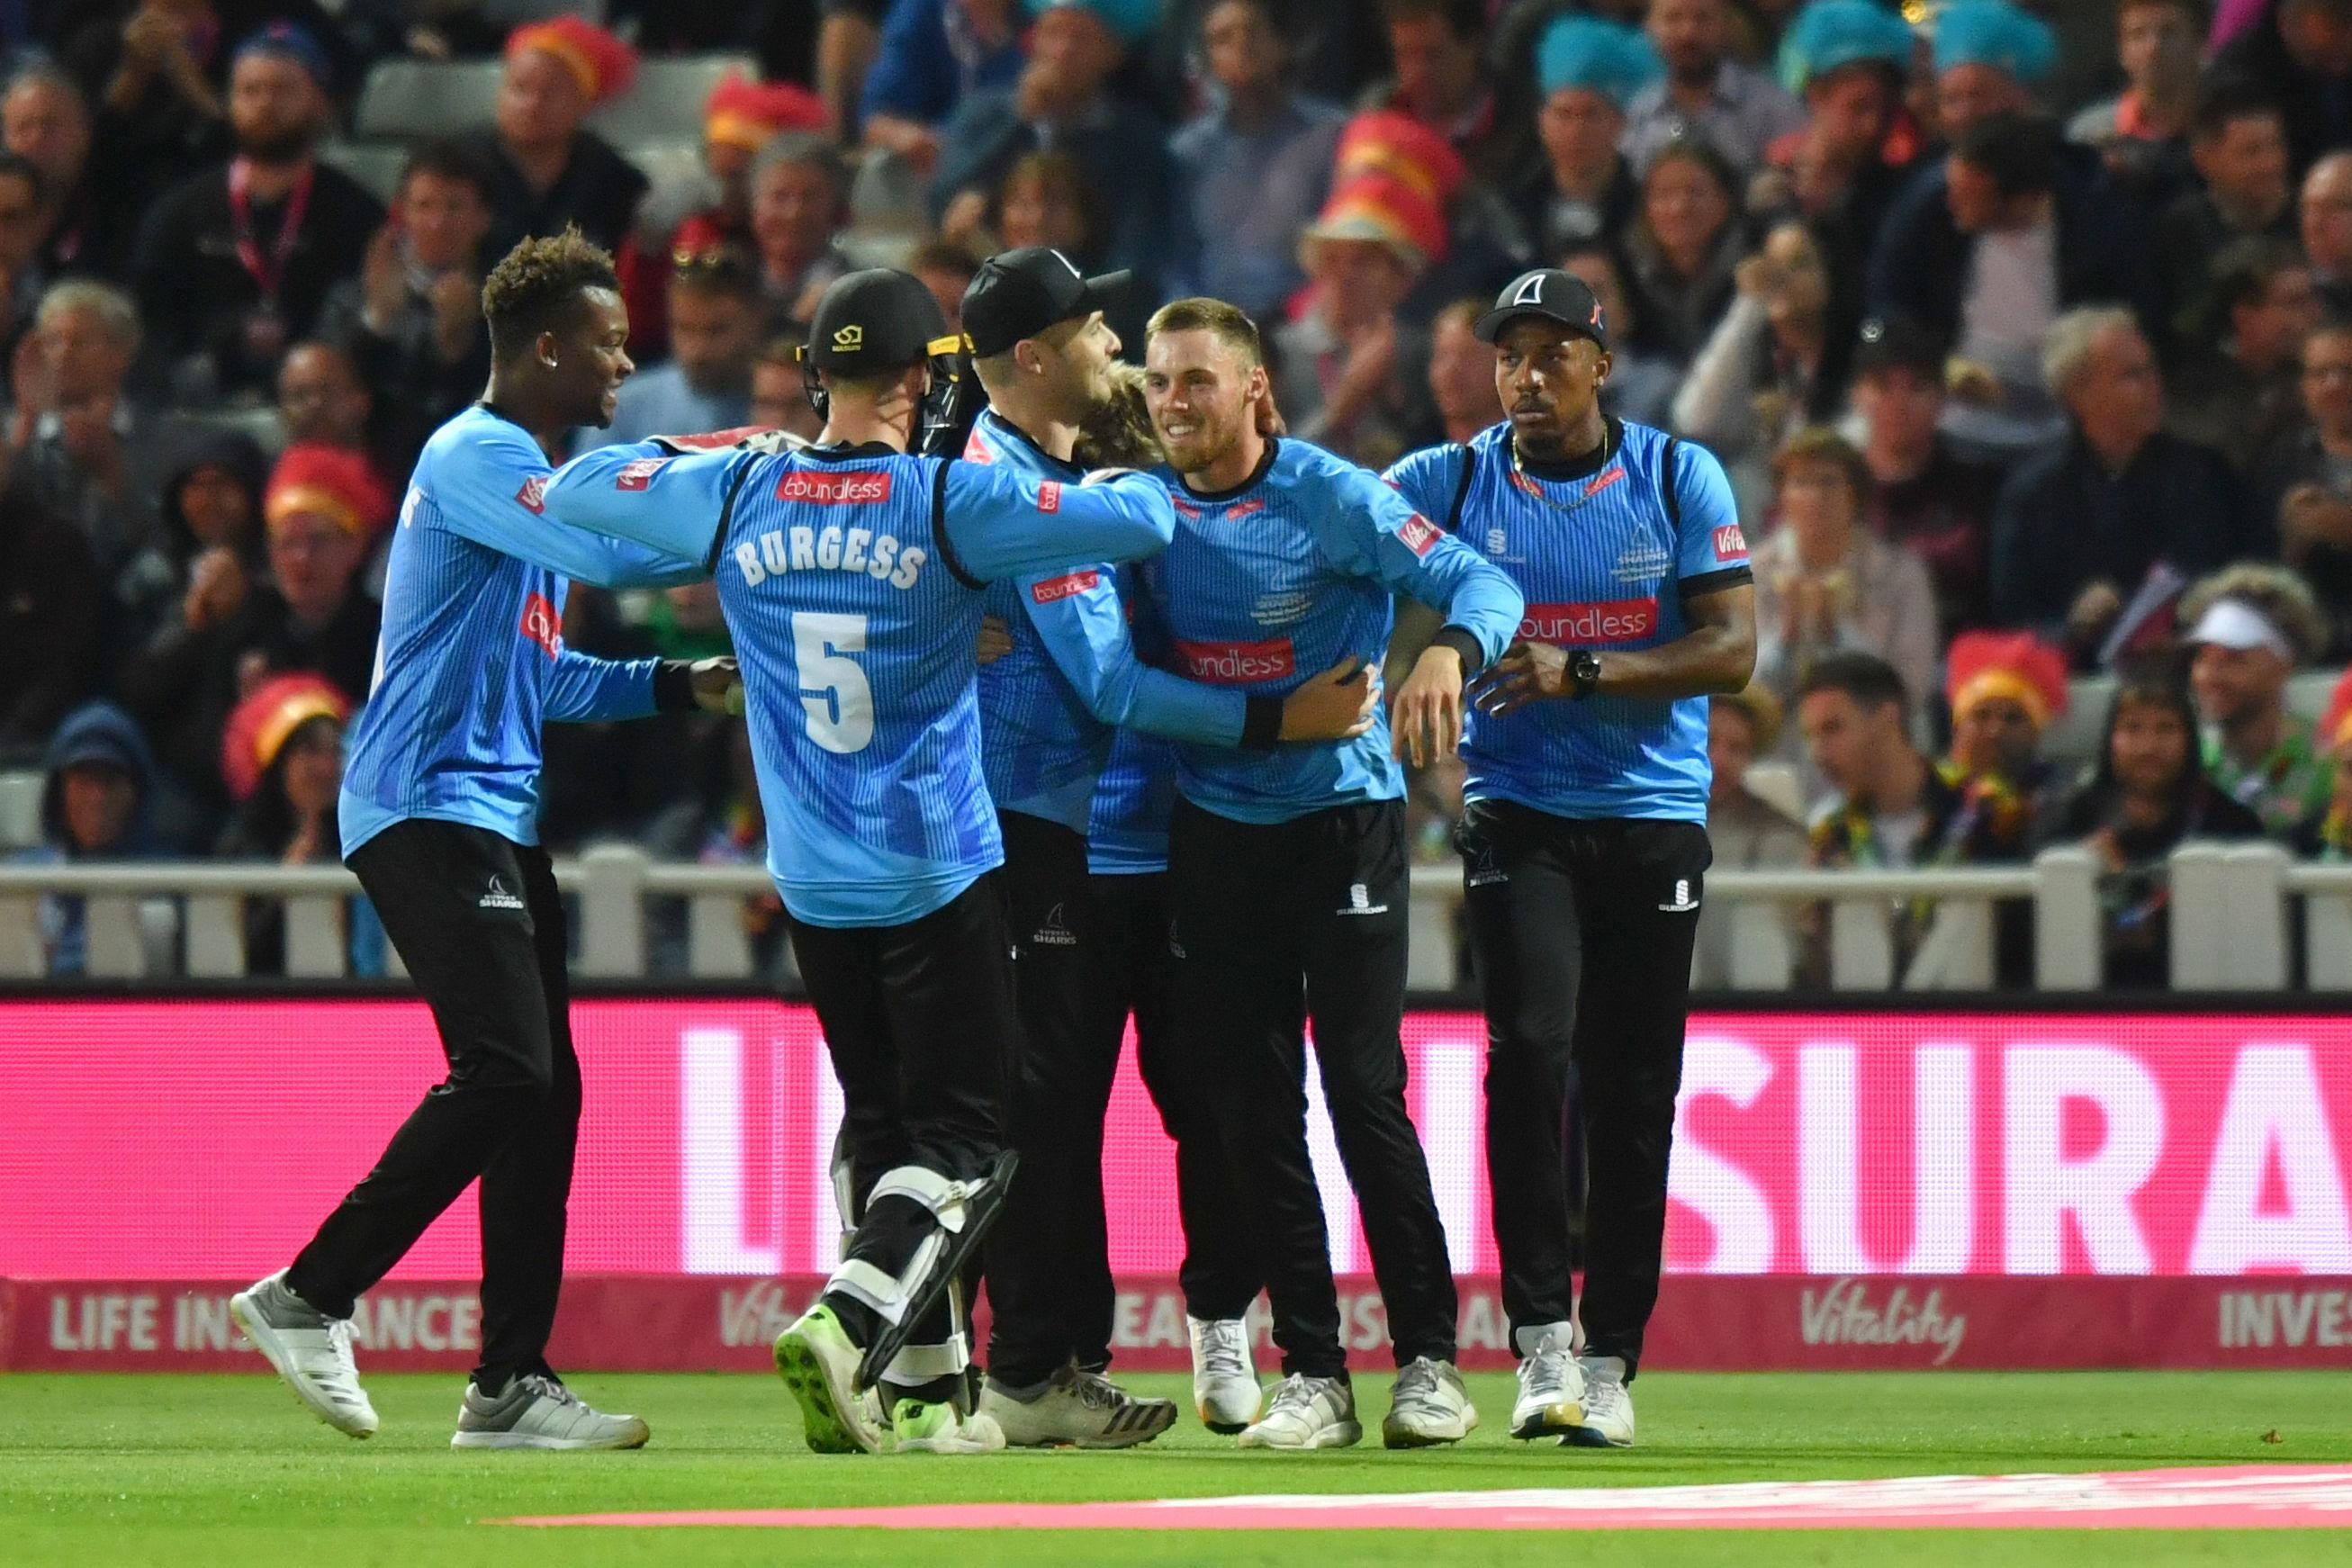 Sussex Sharks celebrate taking the catch of Moeen Ali